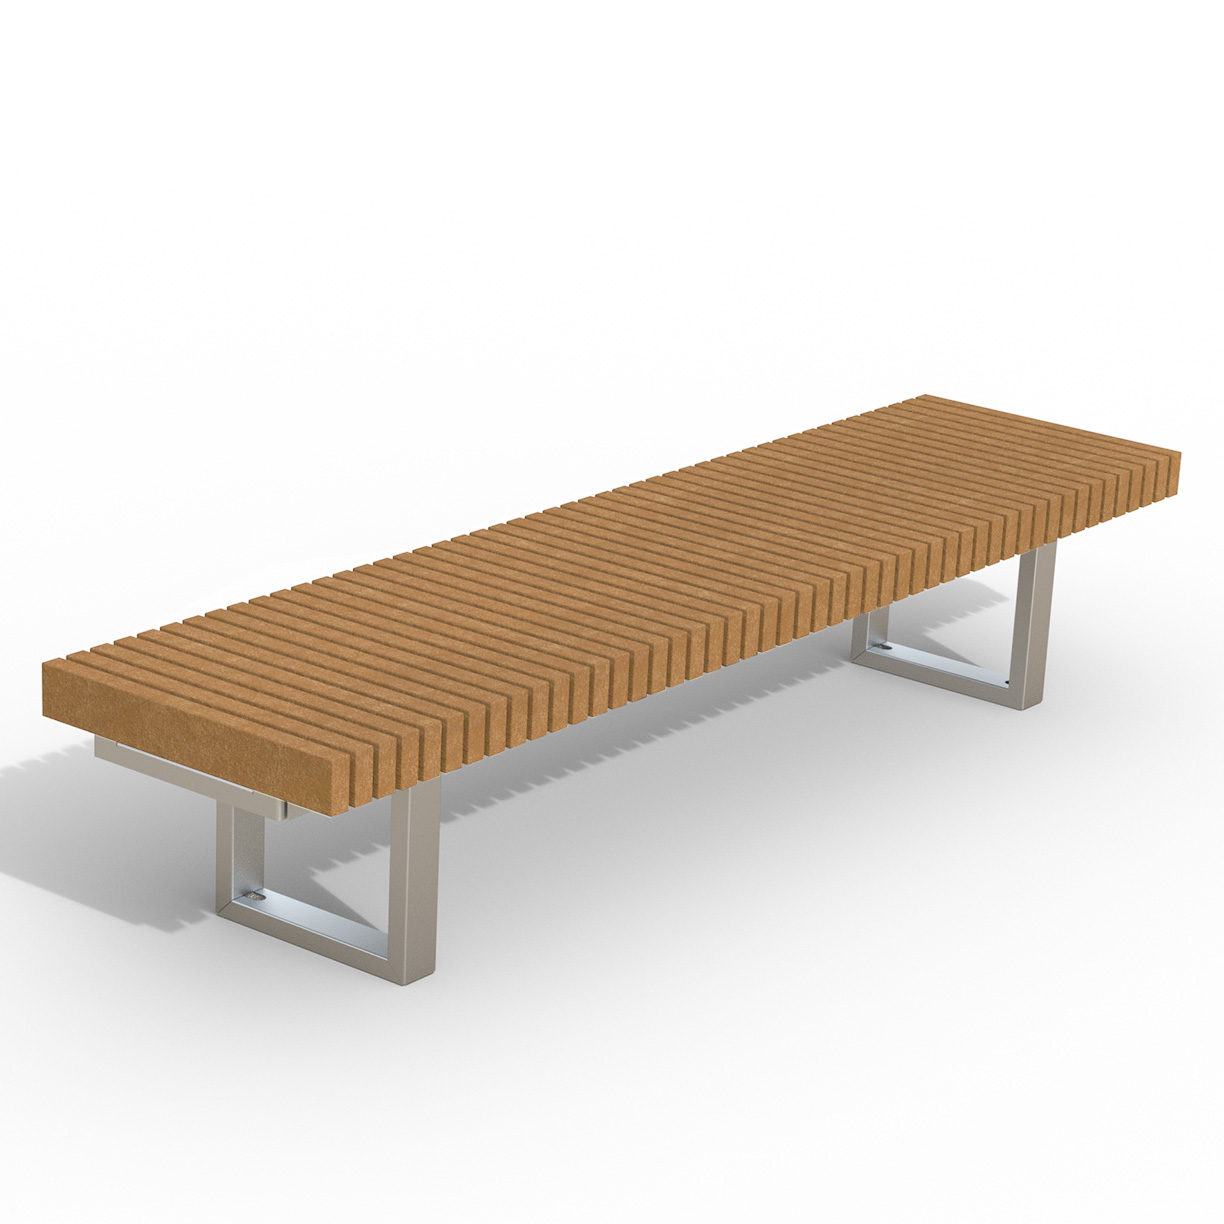 INF24L8R  Infinity Collection 2' x 8' Linear Recycled Plastic Bench